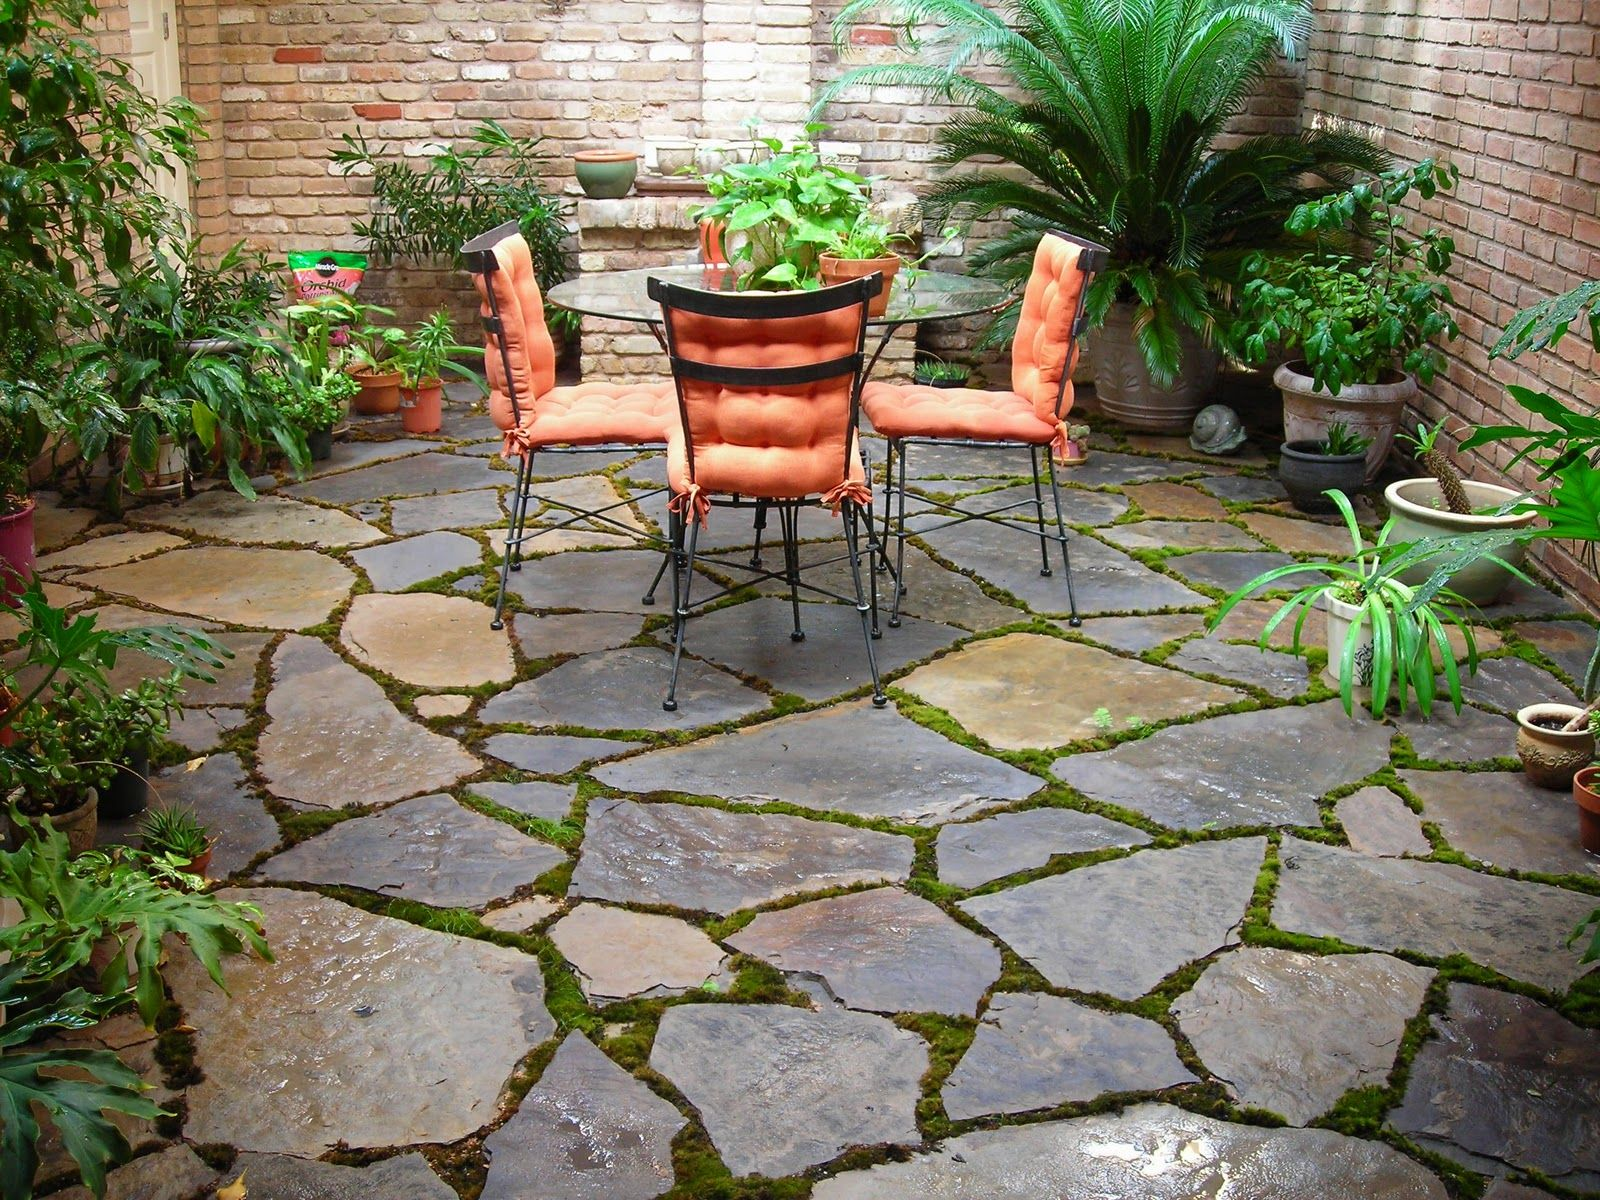 Small Patio Garden Ideas outdoor dining furniture for small patio dining furniture on wooden deck Outdoor Small Backyard Landscaping Ideas With Installing Flagstone Patio Stone Backyard Patio Garden Decor Ideas